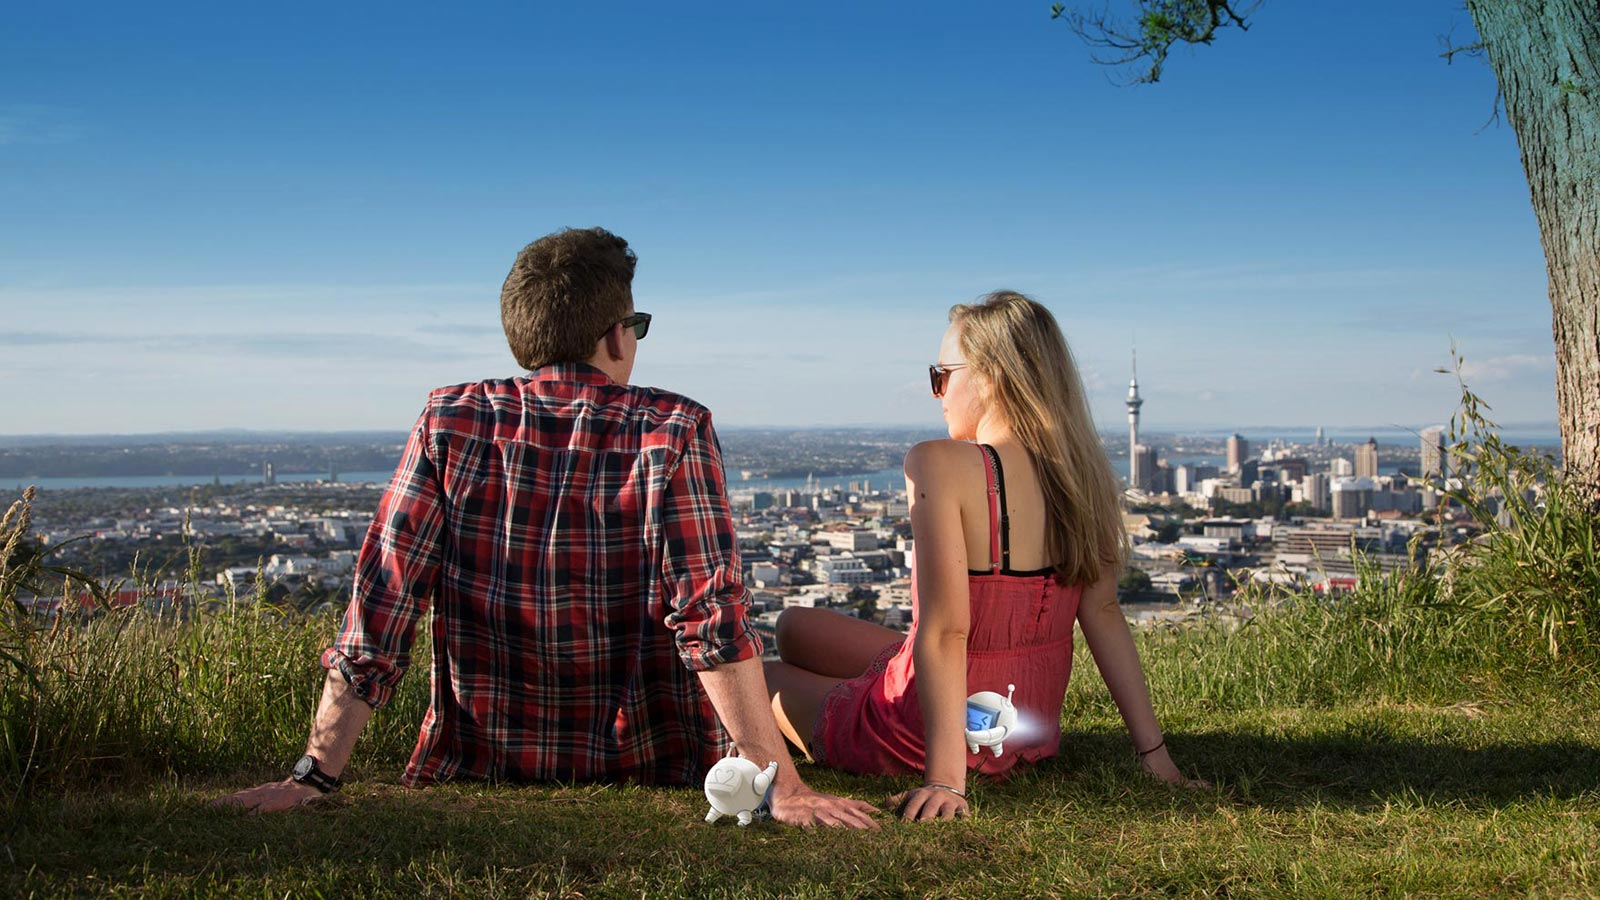 Best Dating Sites & Apps New Zealand (Daters Guide For 2019)